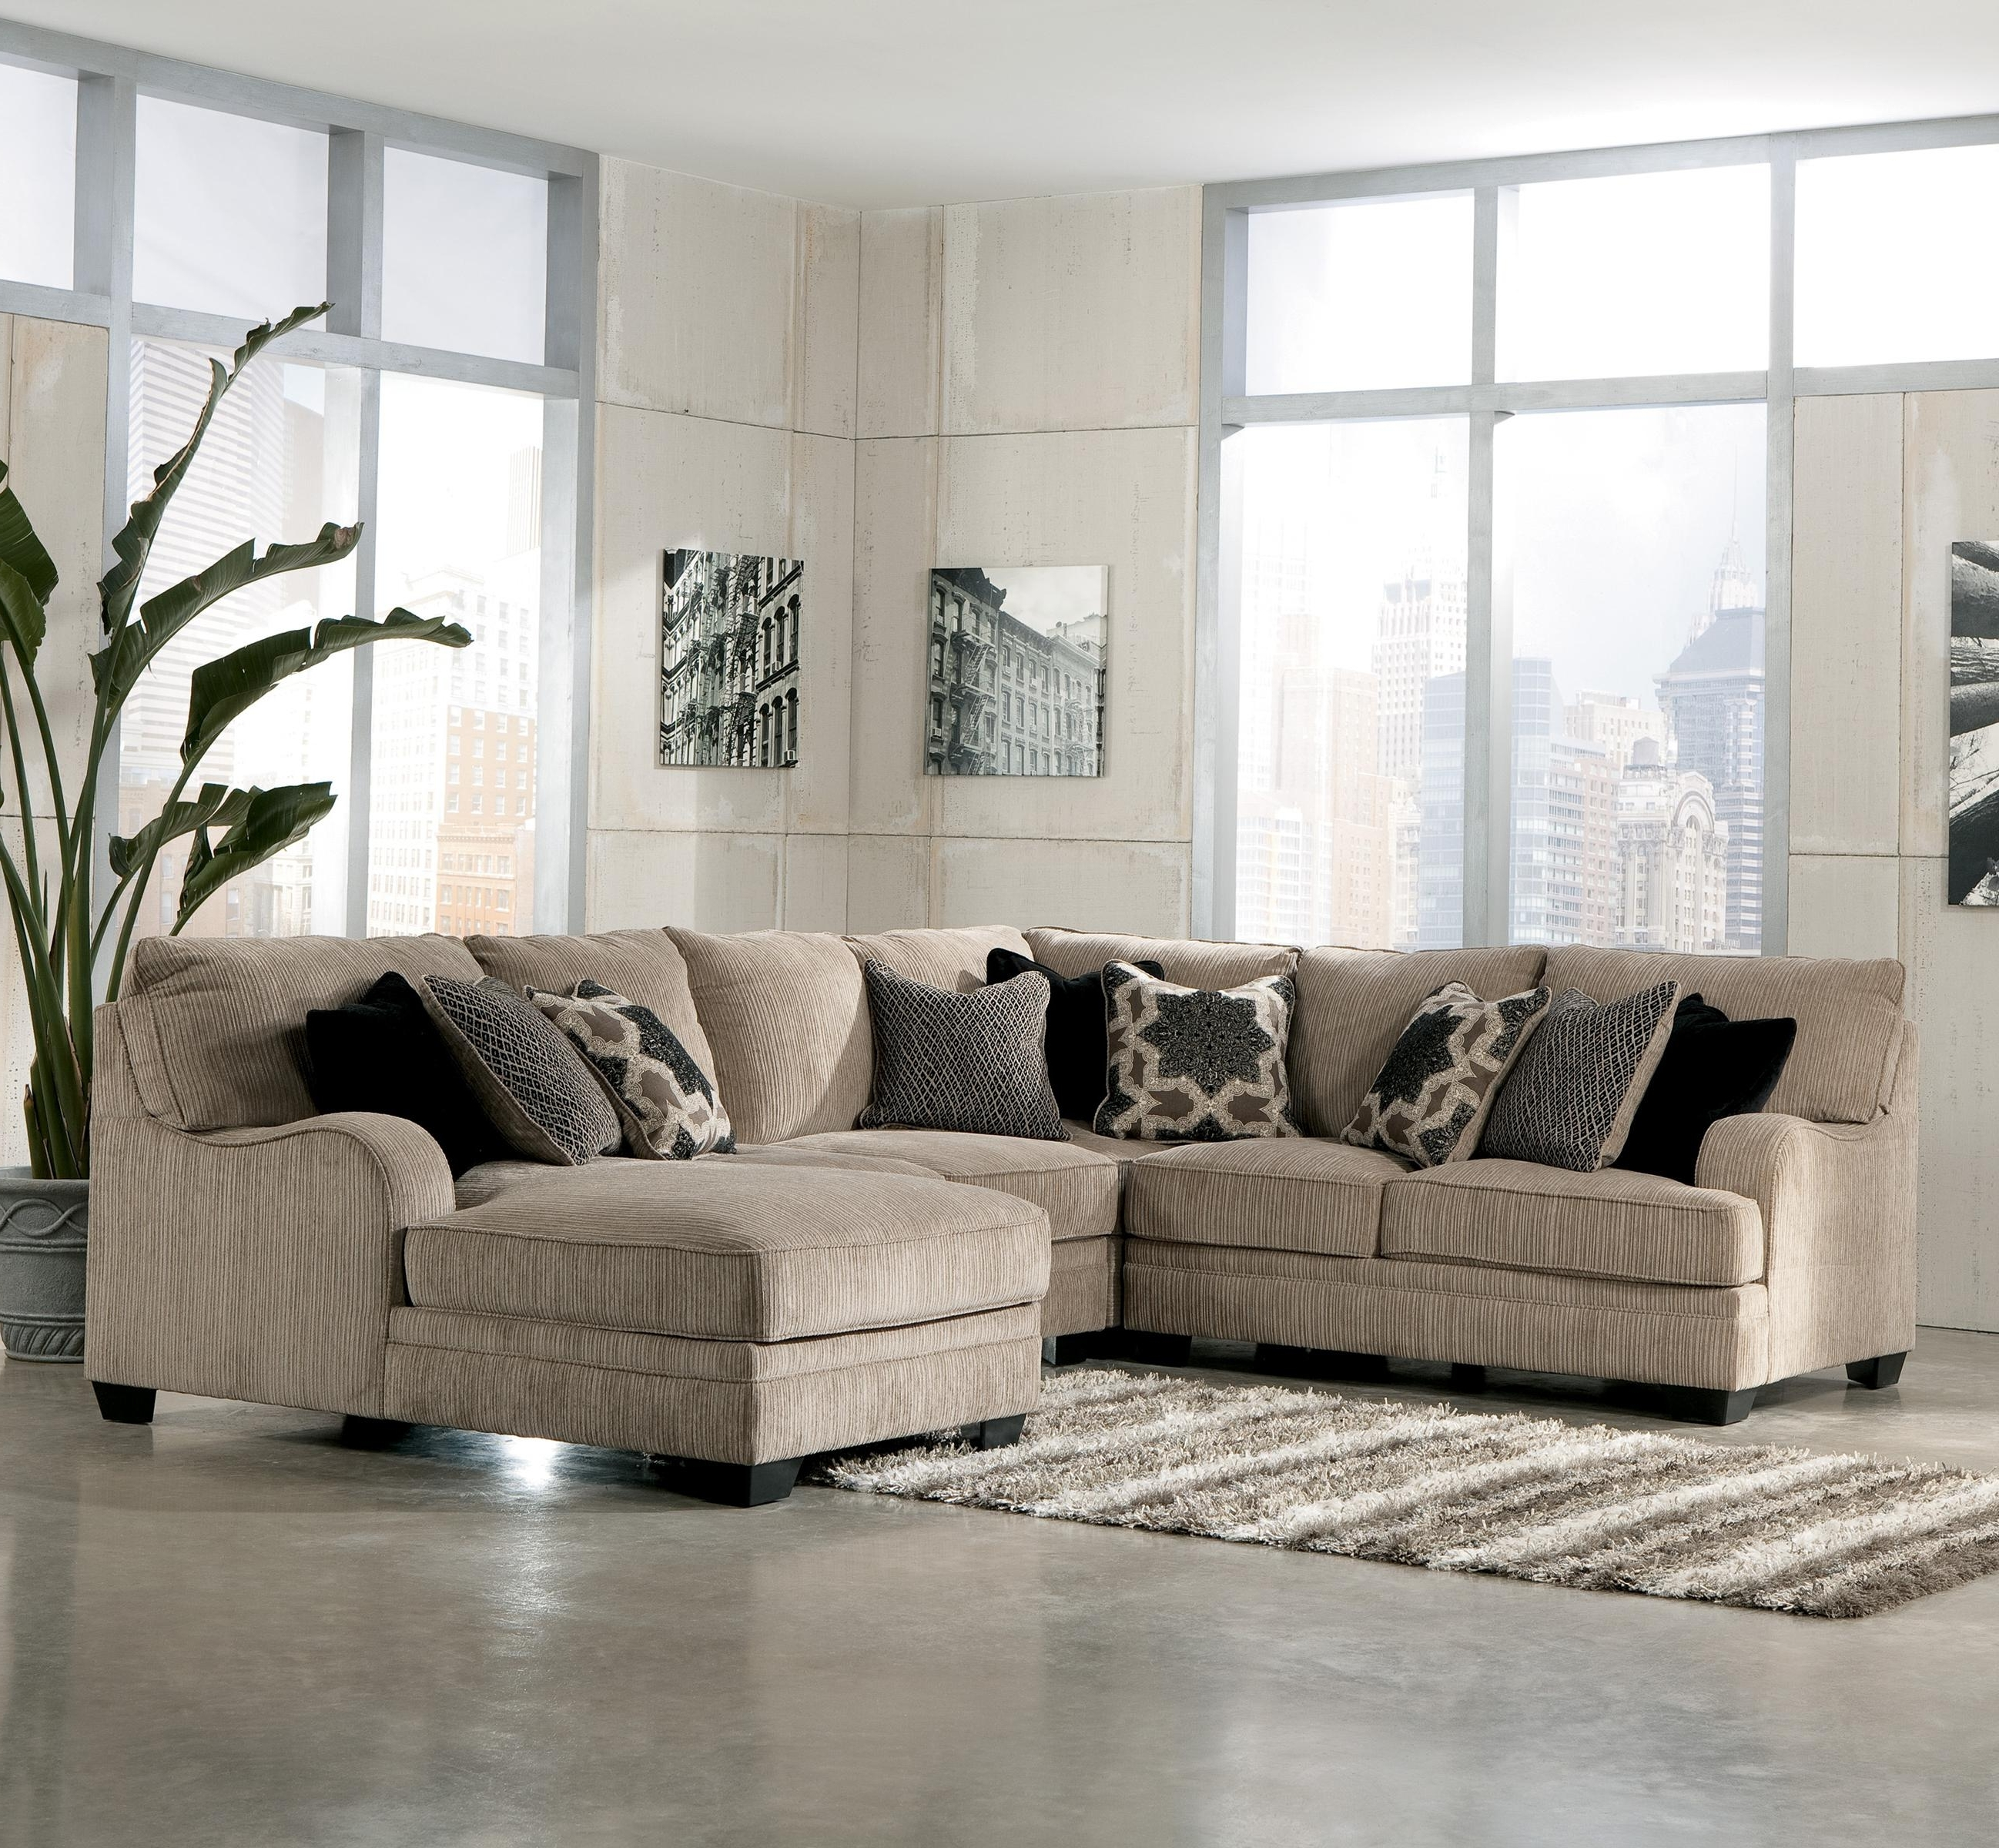 Kansas City Mo Sectional Sofas With Regard To Most Recently Released Signature Designashley Katisha – Platinum 4 Piece Sectional (View 17 of 20)